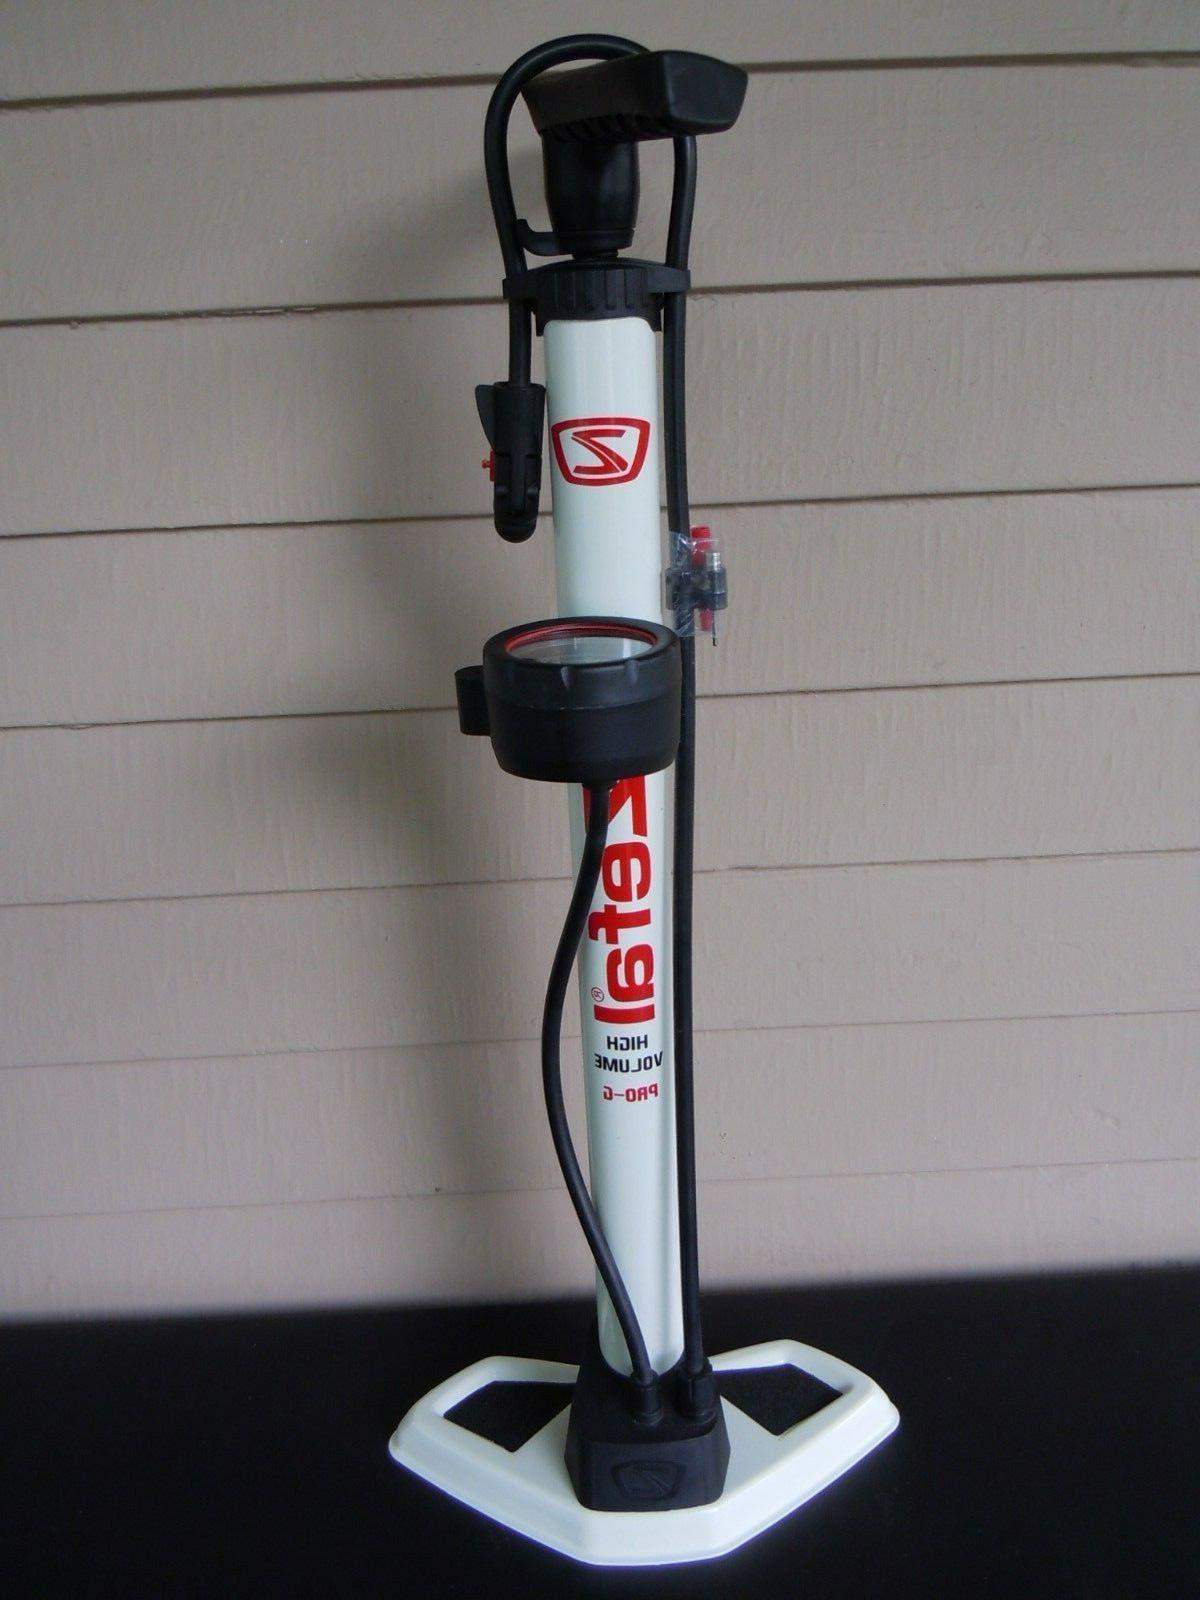 zefal air high volume pro g stand